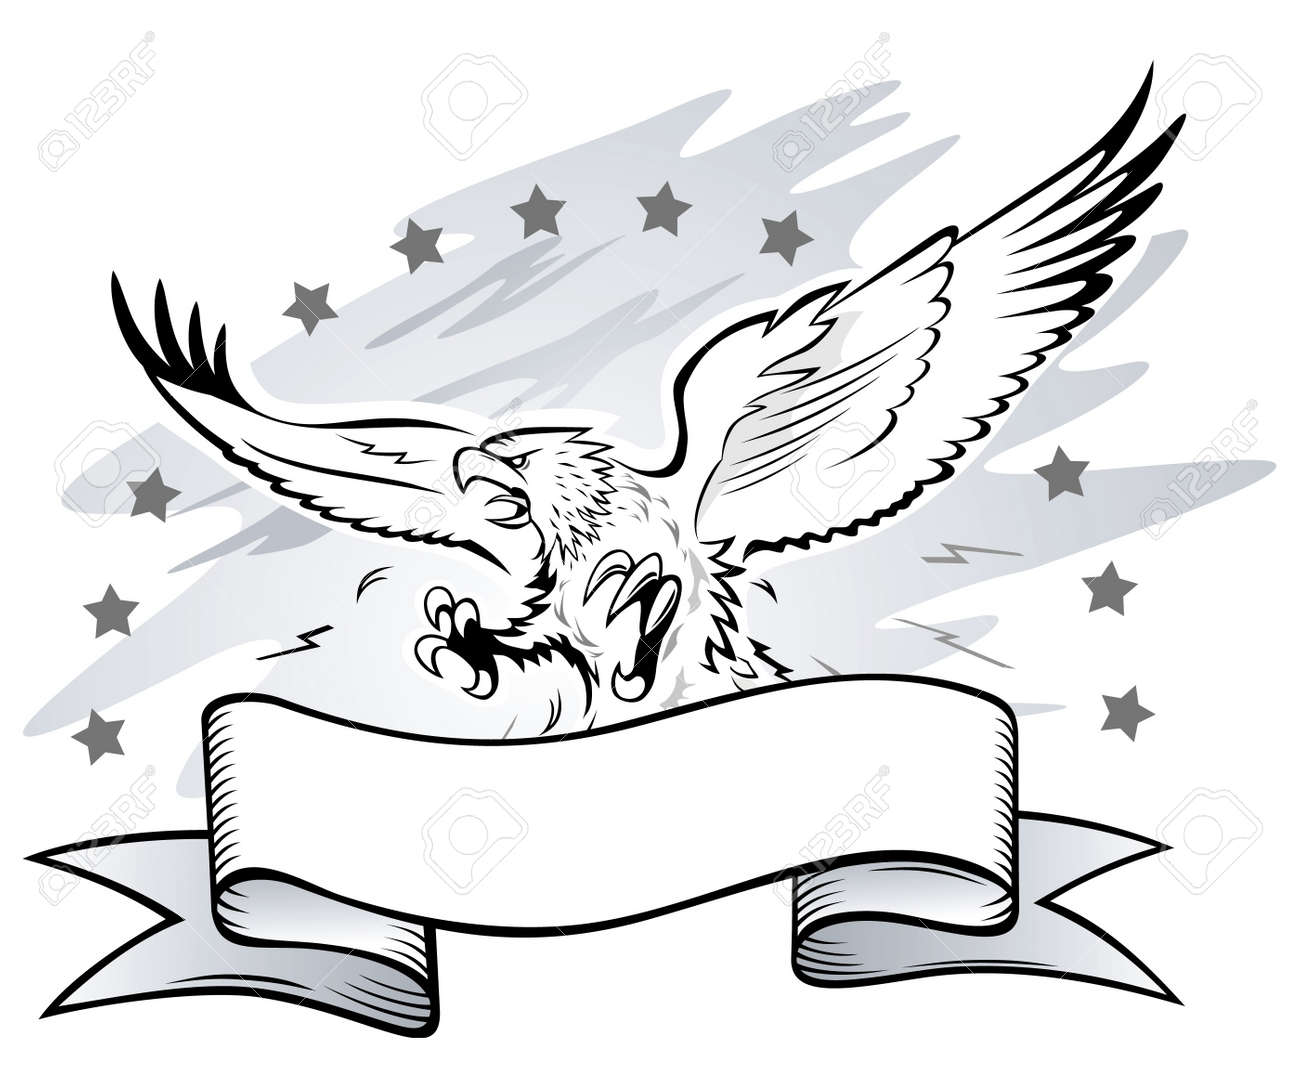 Spread Winged Ea   Eagle Wings Spread Clipart Black And White